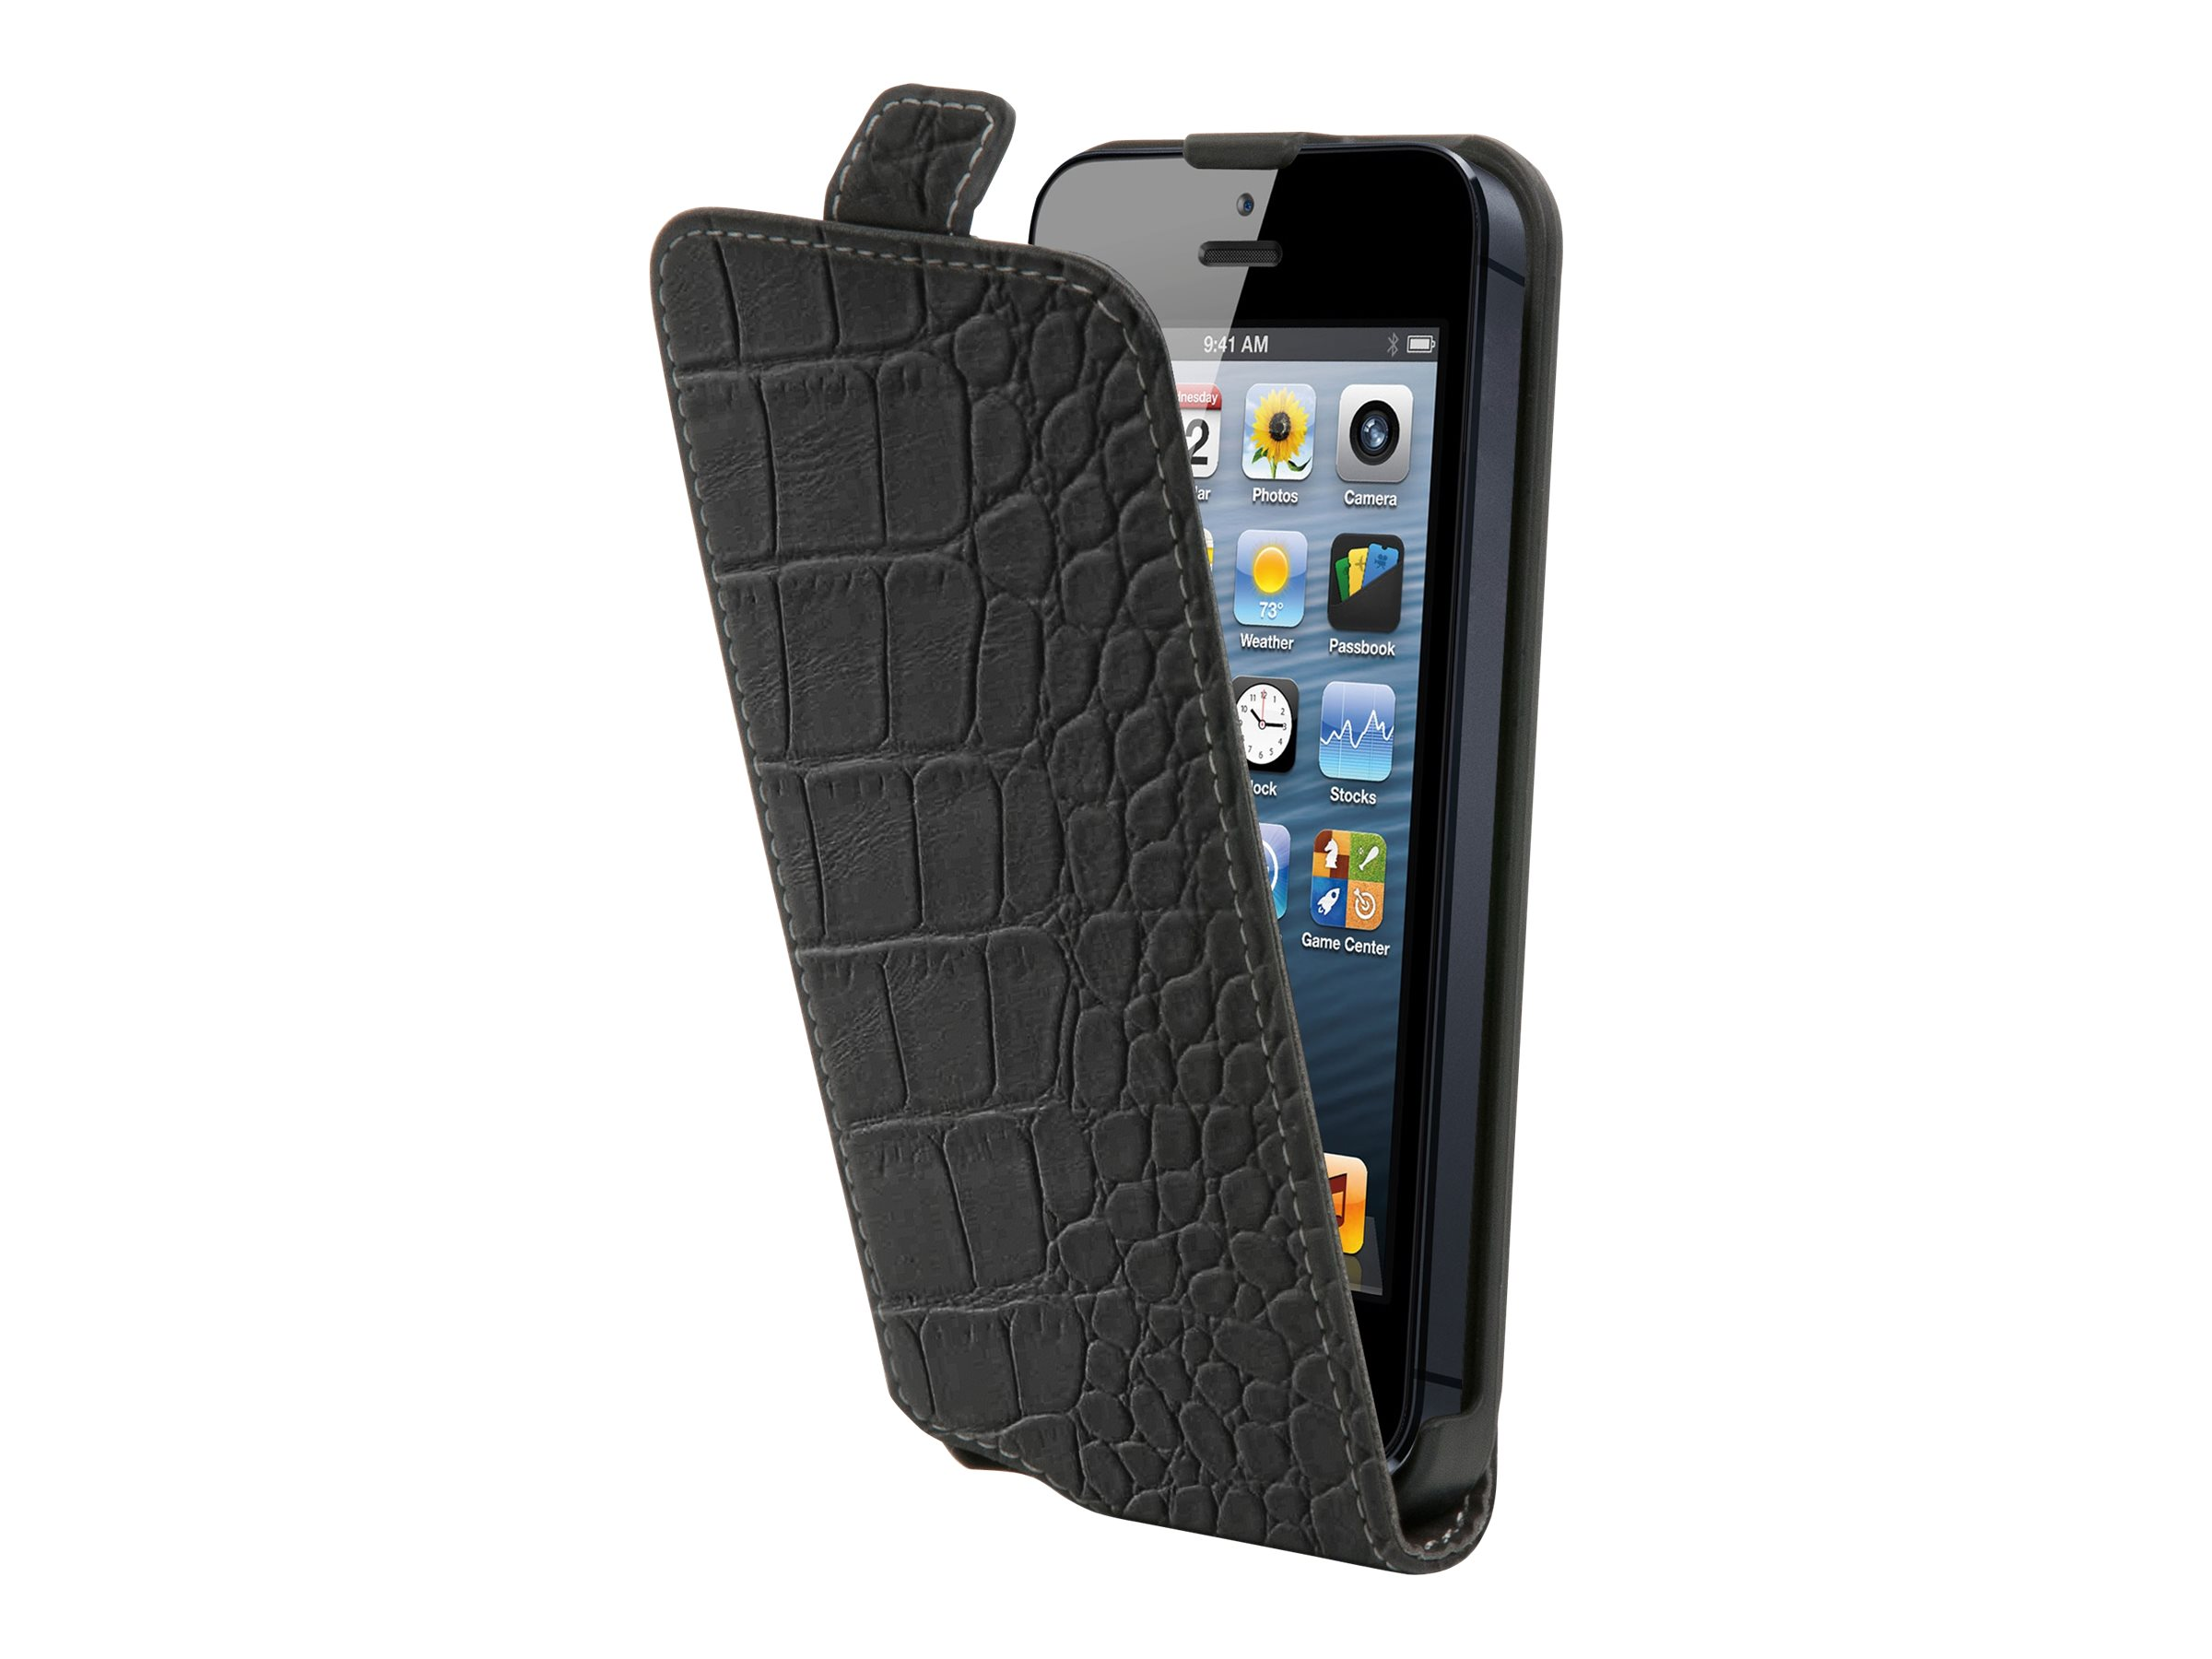 Muvit Slim - Protection à rabat pour iPhone 5, 5s - croco noir